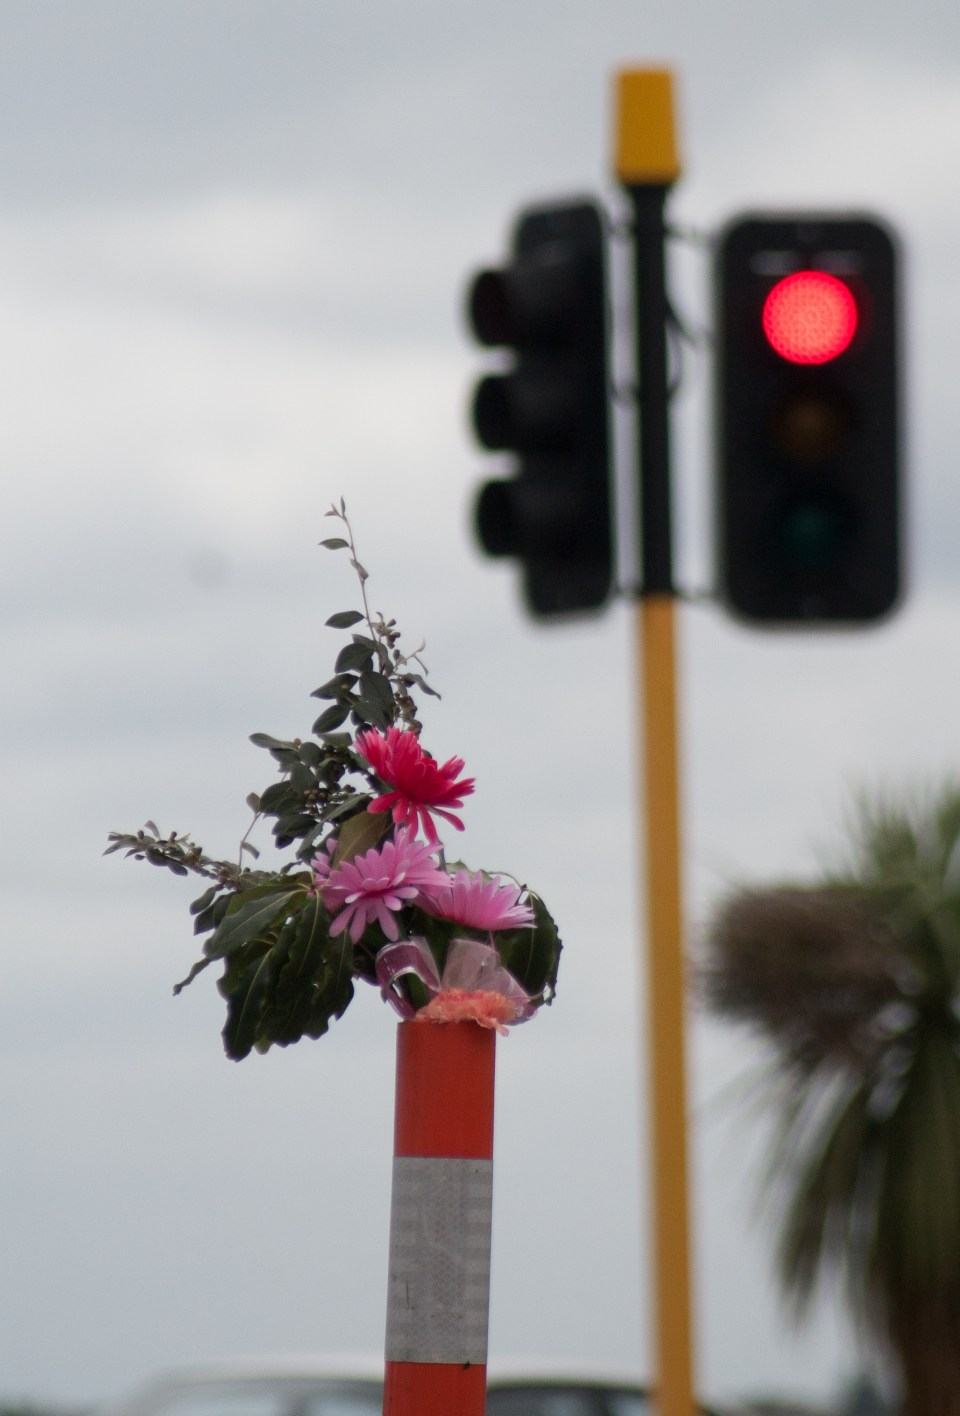 flowers in a road cone - two years exactly from the 22/02/2011 christchurch earthquake